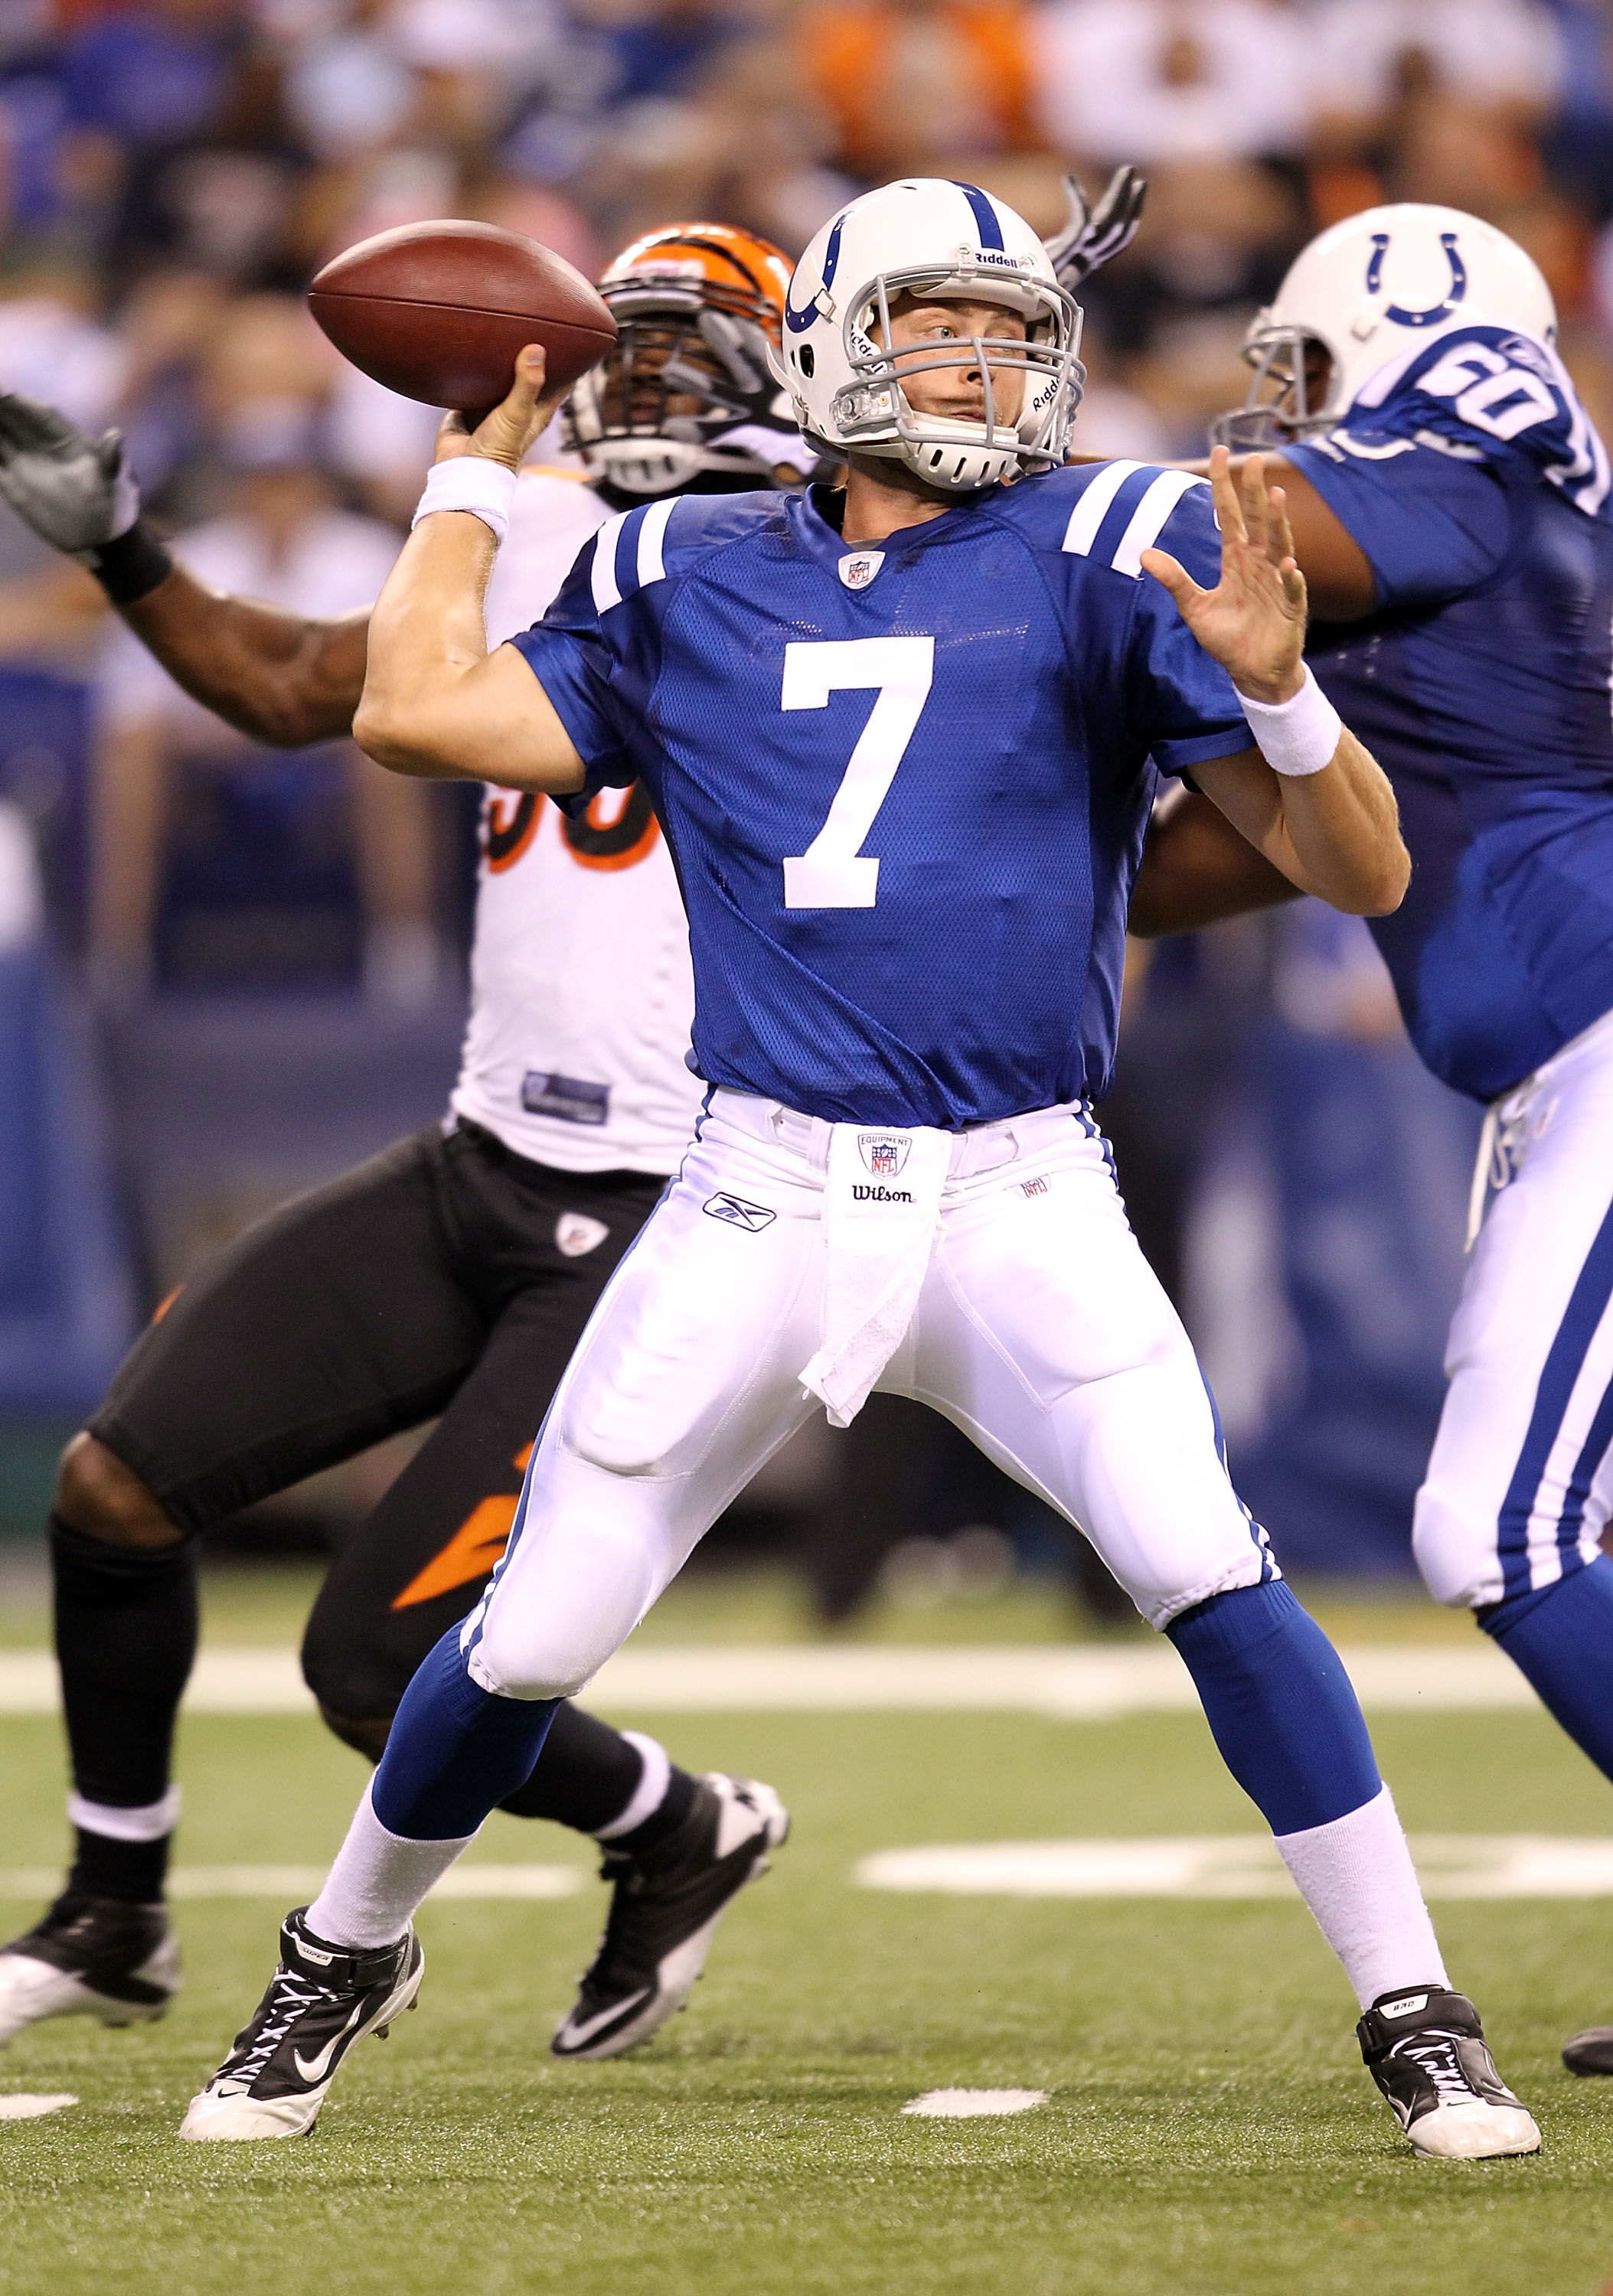 INDIANAPOLIS - SEPTEMBER 02:  Curtis Painter #7 of the Indianapolis Colts throws a pass against the Cincinnati Bengals during the NFL preseason game at Lucas Oil Stadium on September 2, 2010 in Indianapolis, Indiana.  (Photo by Andy Lyons/Getty Images)